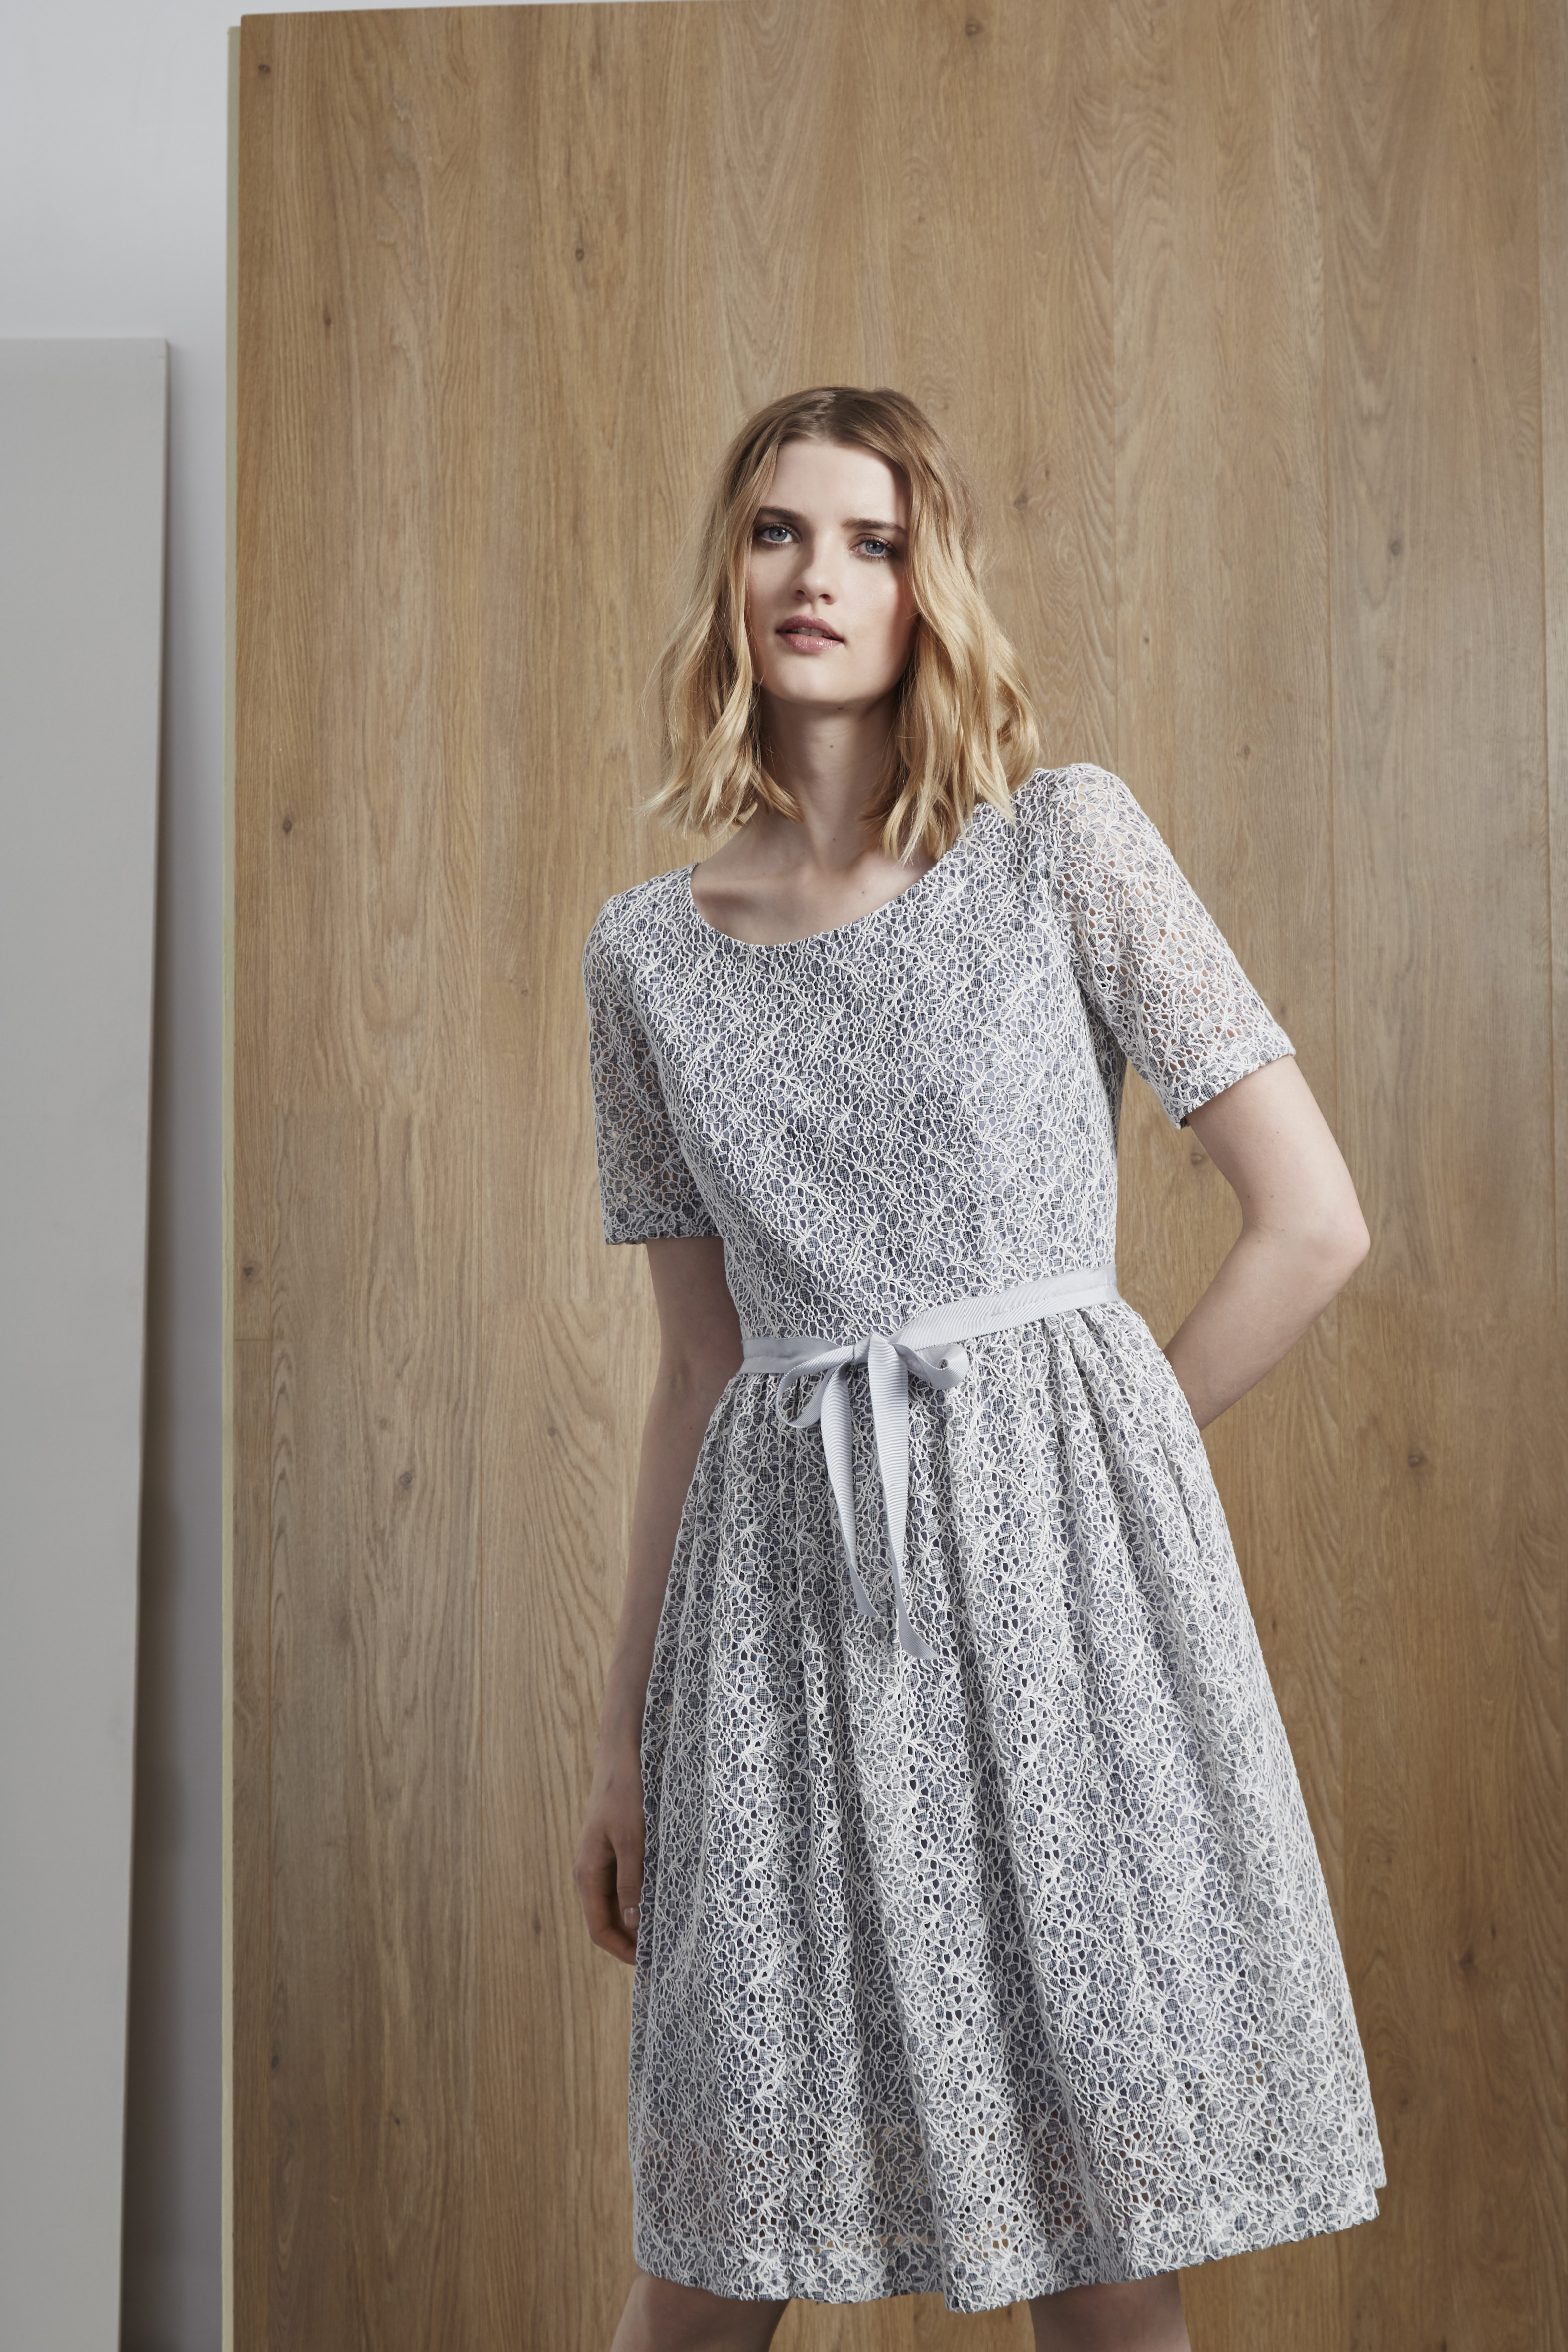 Lexie Lace Dress perfect for wedding guests